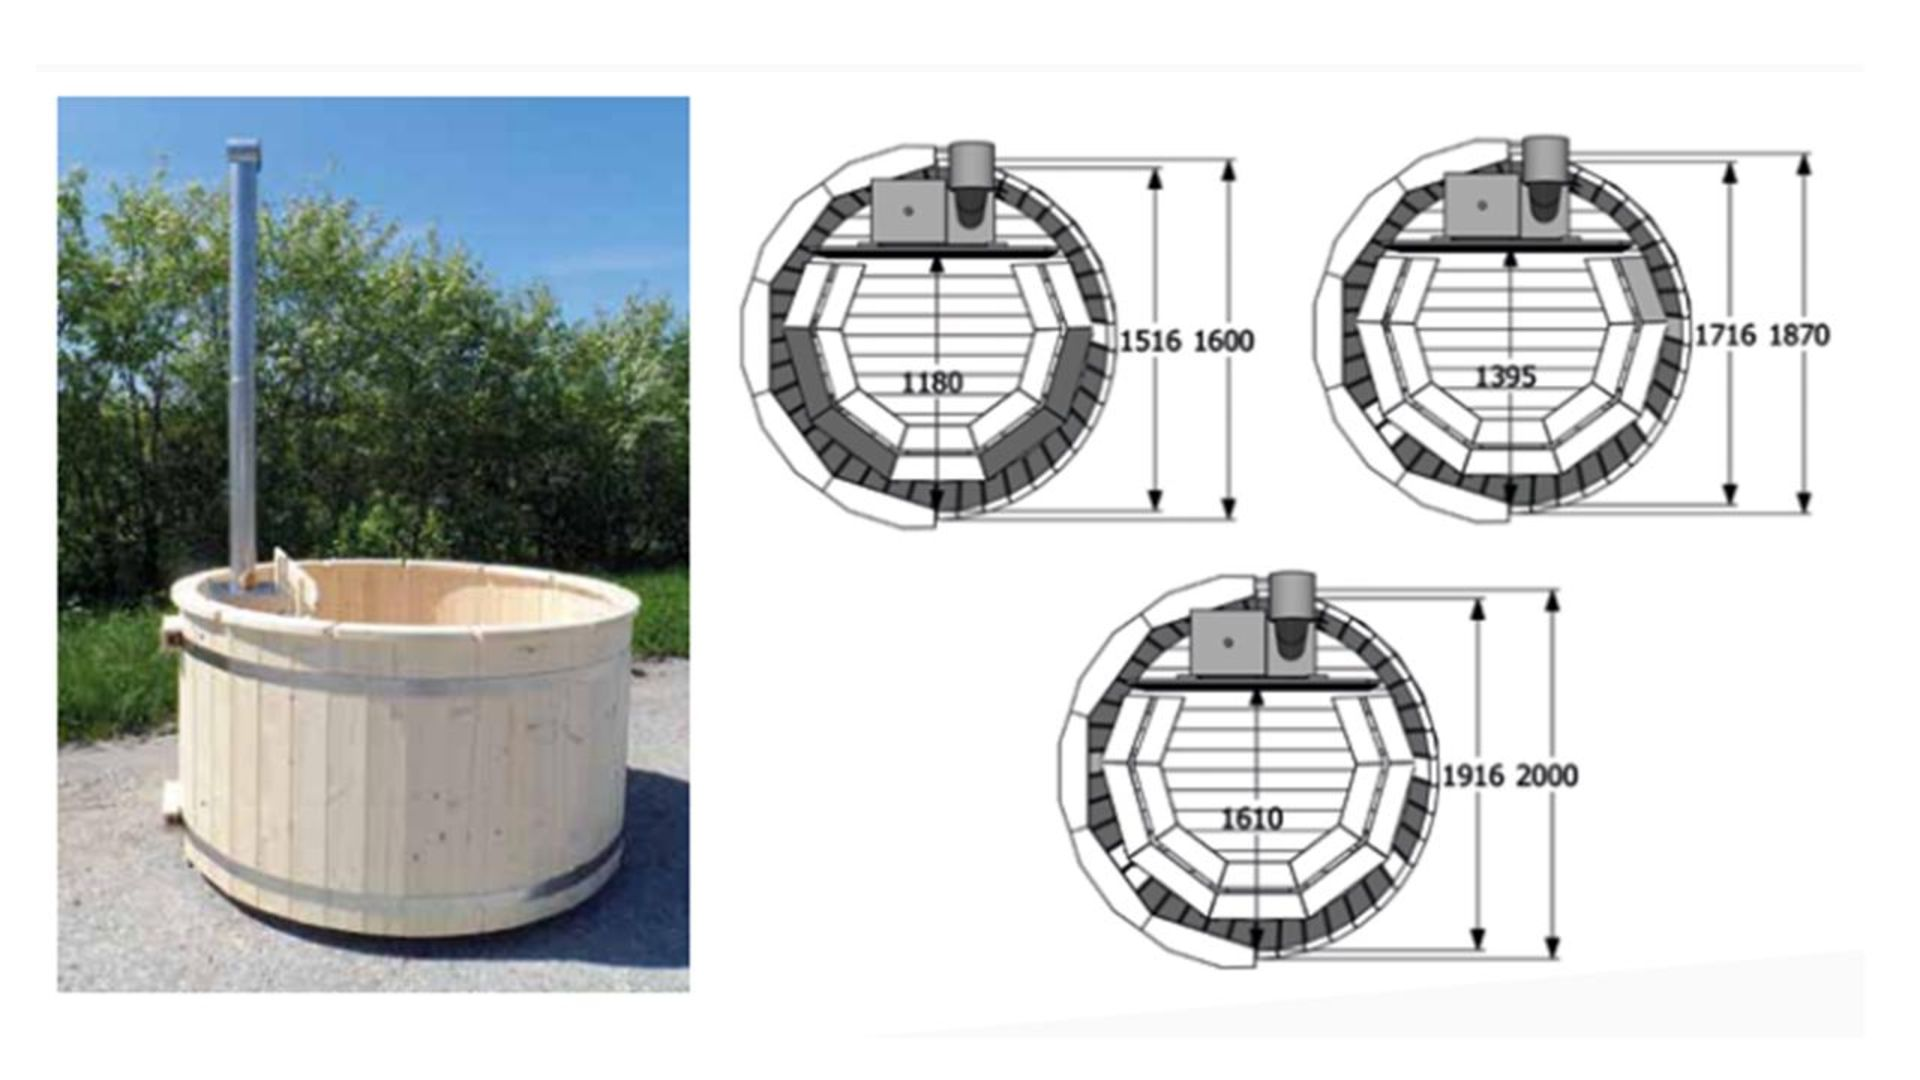 + VAT Brand New Spruce Wooden Hot Tub- 4/6 Person - 105cm Tall - 42mm Thickness - Internal Heater - - Image 2 of 2